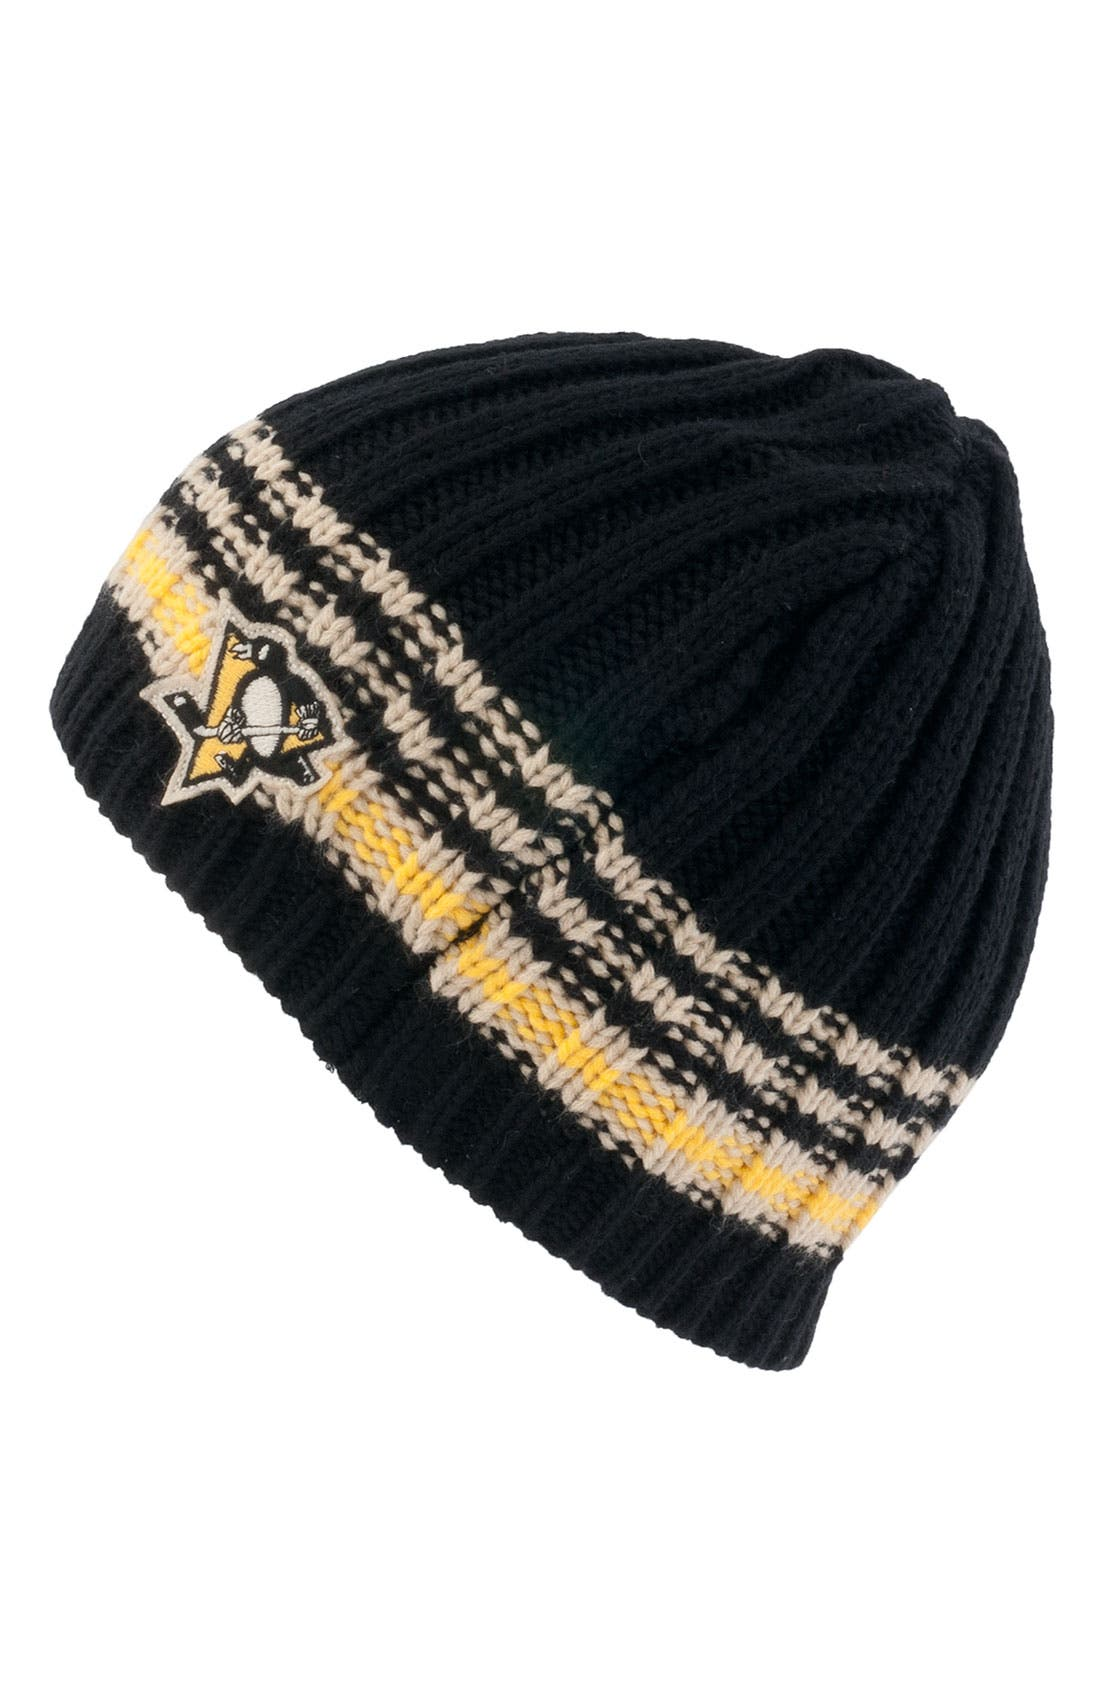 Alternate Image 1 Selected - American Needle 'Pittsuburgh Penguins - Targhee' Knit Hat